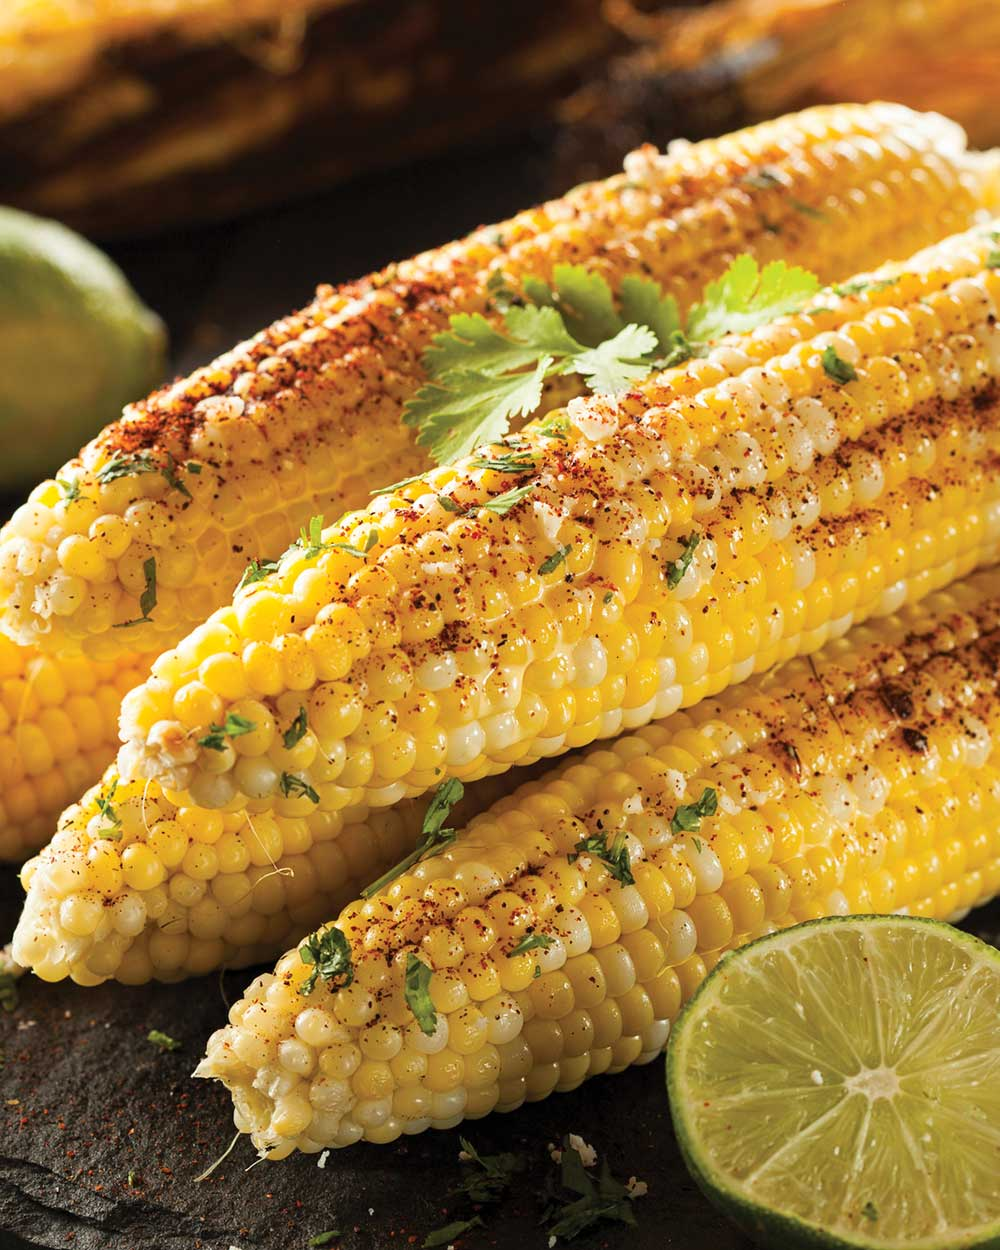 Easy Grilled Corn on the Cob with Lime Juice and Chili Powder